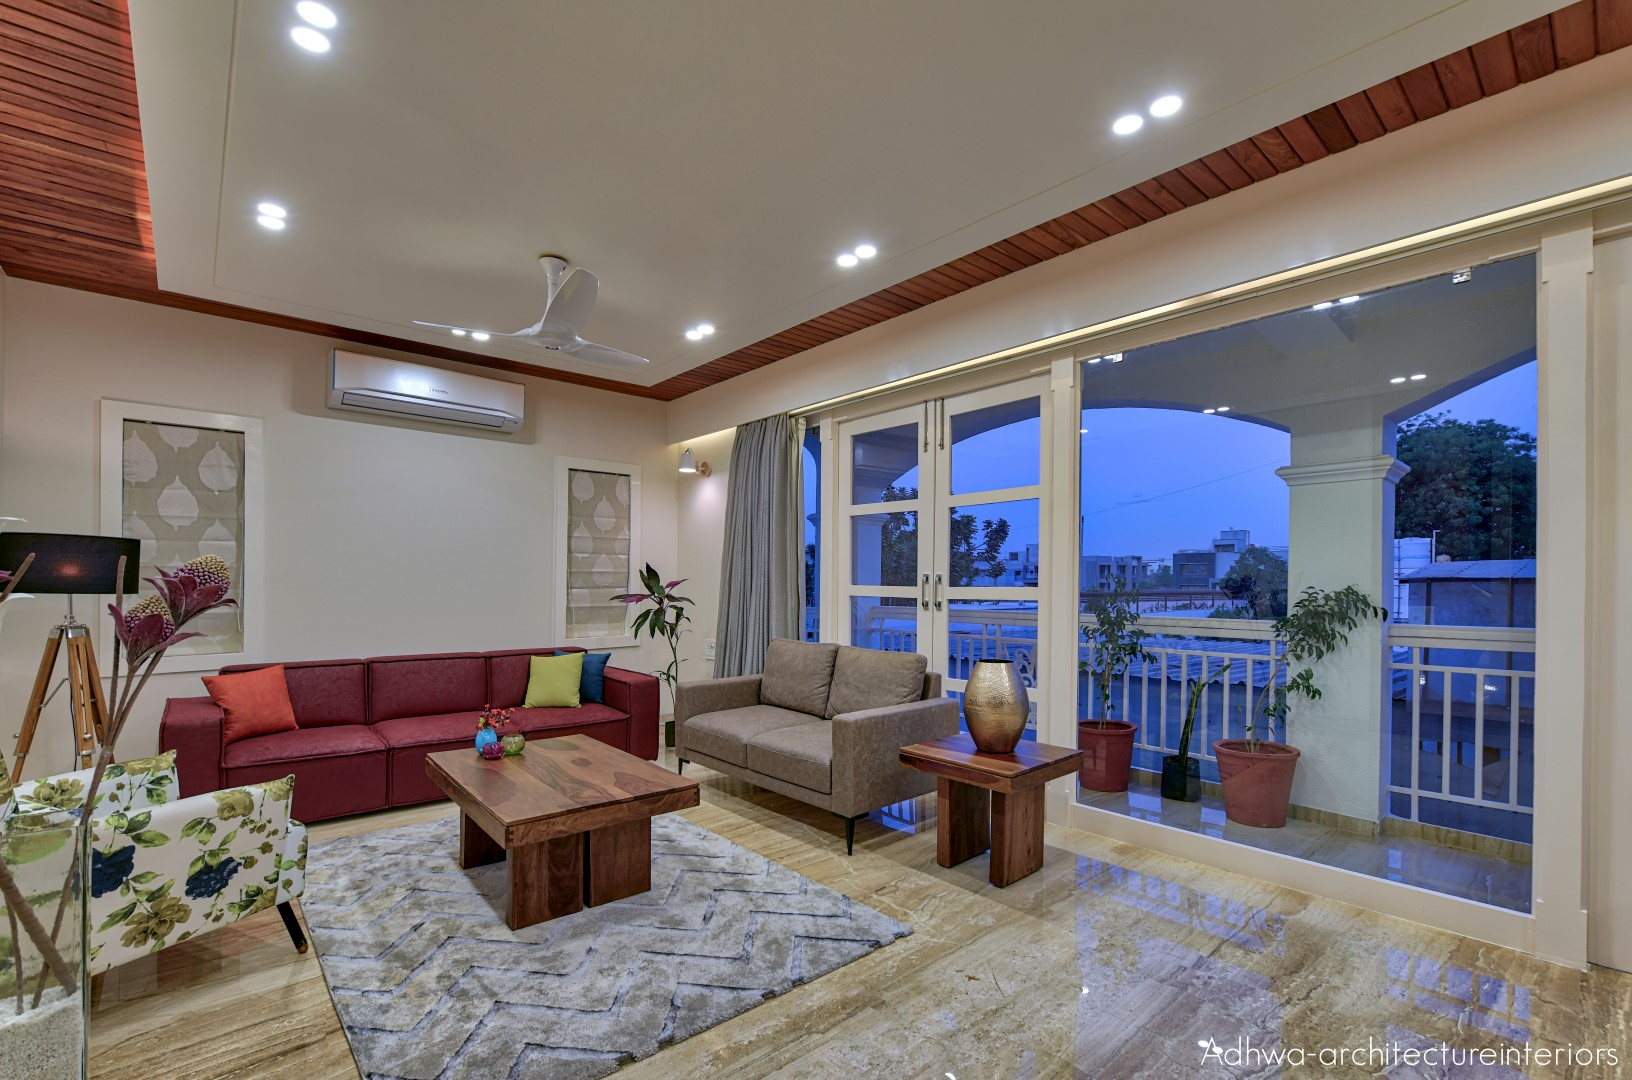 On the first floor the stucco texture on the wall and ceiling and the exposed finish ceiling with track lights in the other room the traditional color like